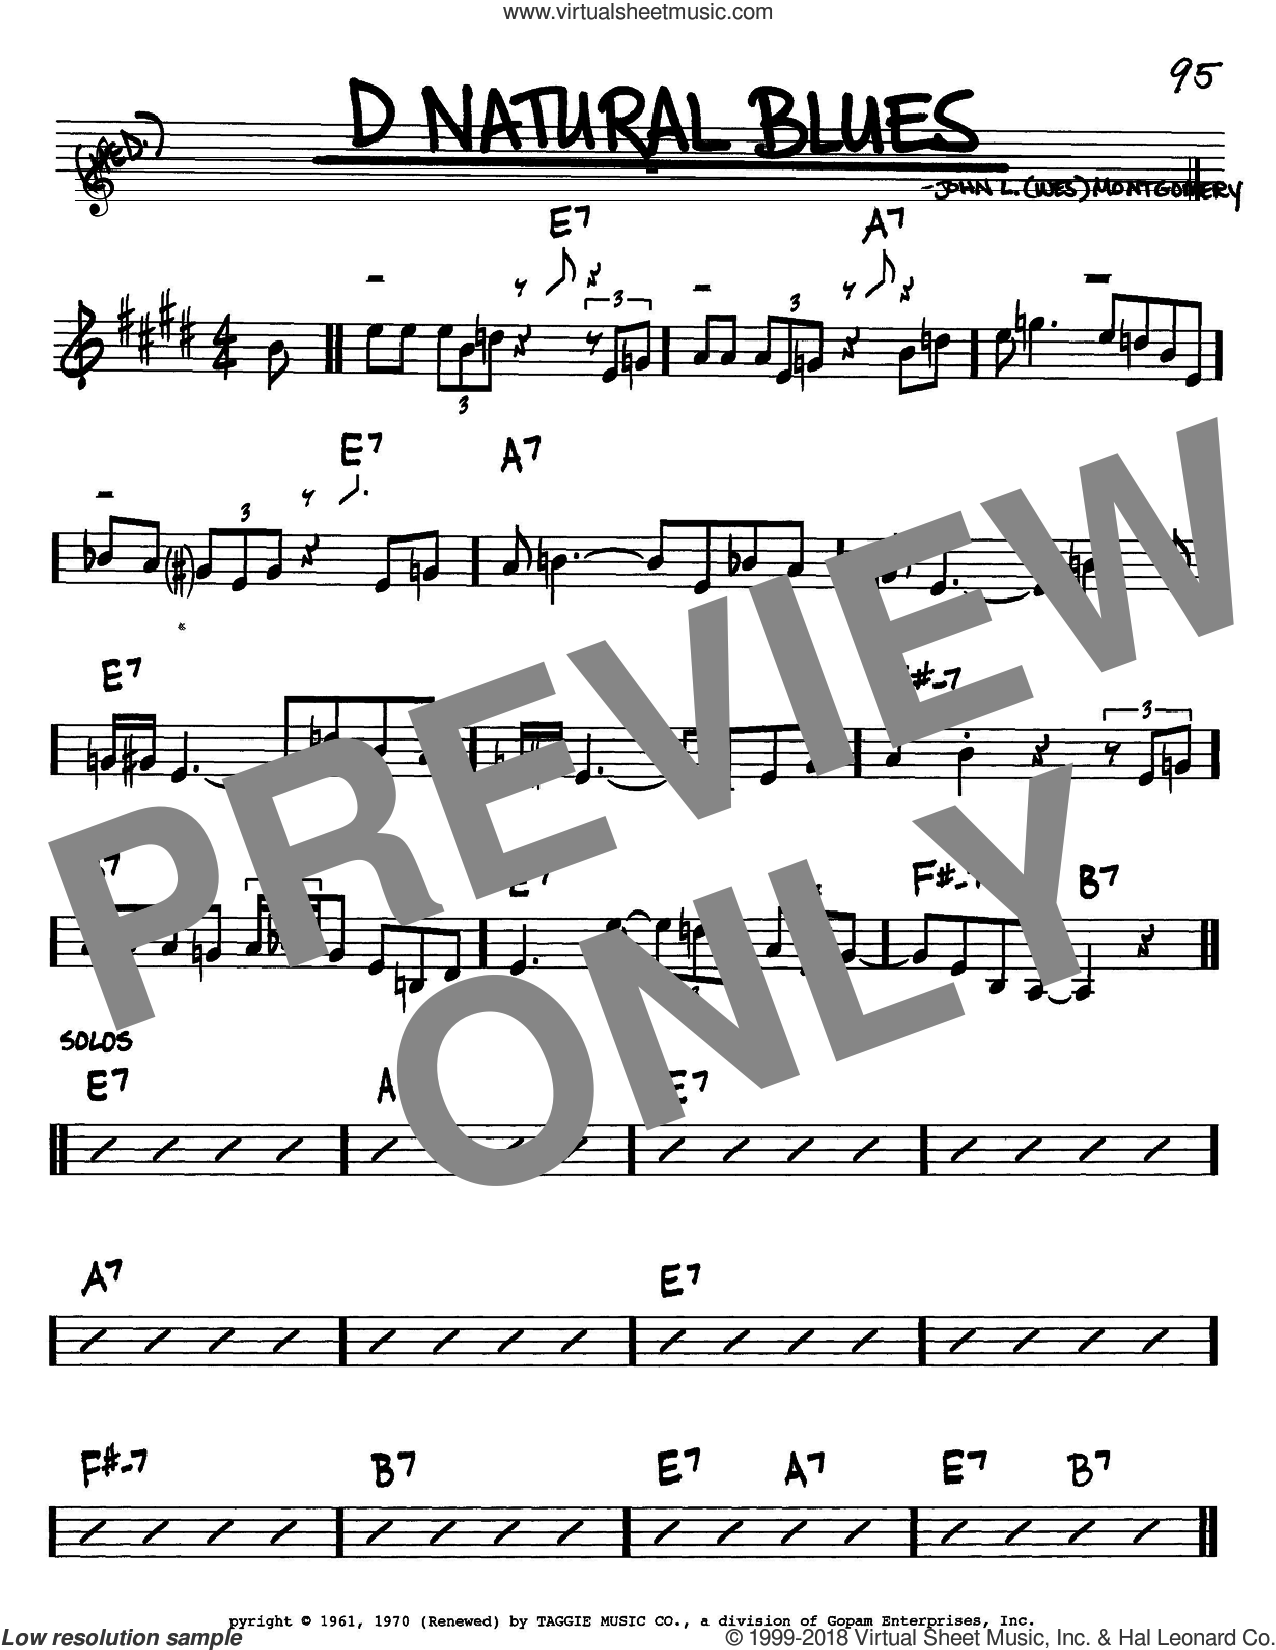 D Natural Blues sheet music for voice and other instruments (Bb) by Wes Montgomery